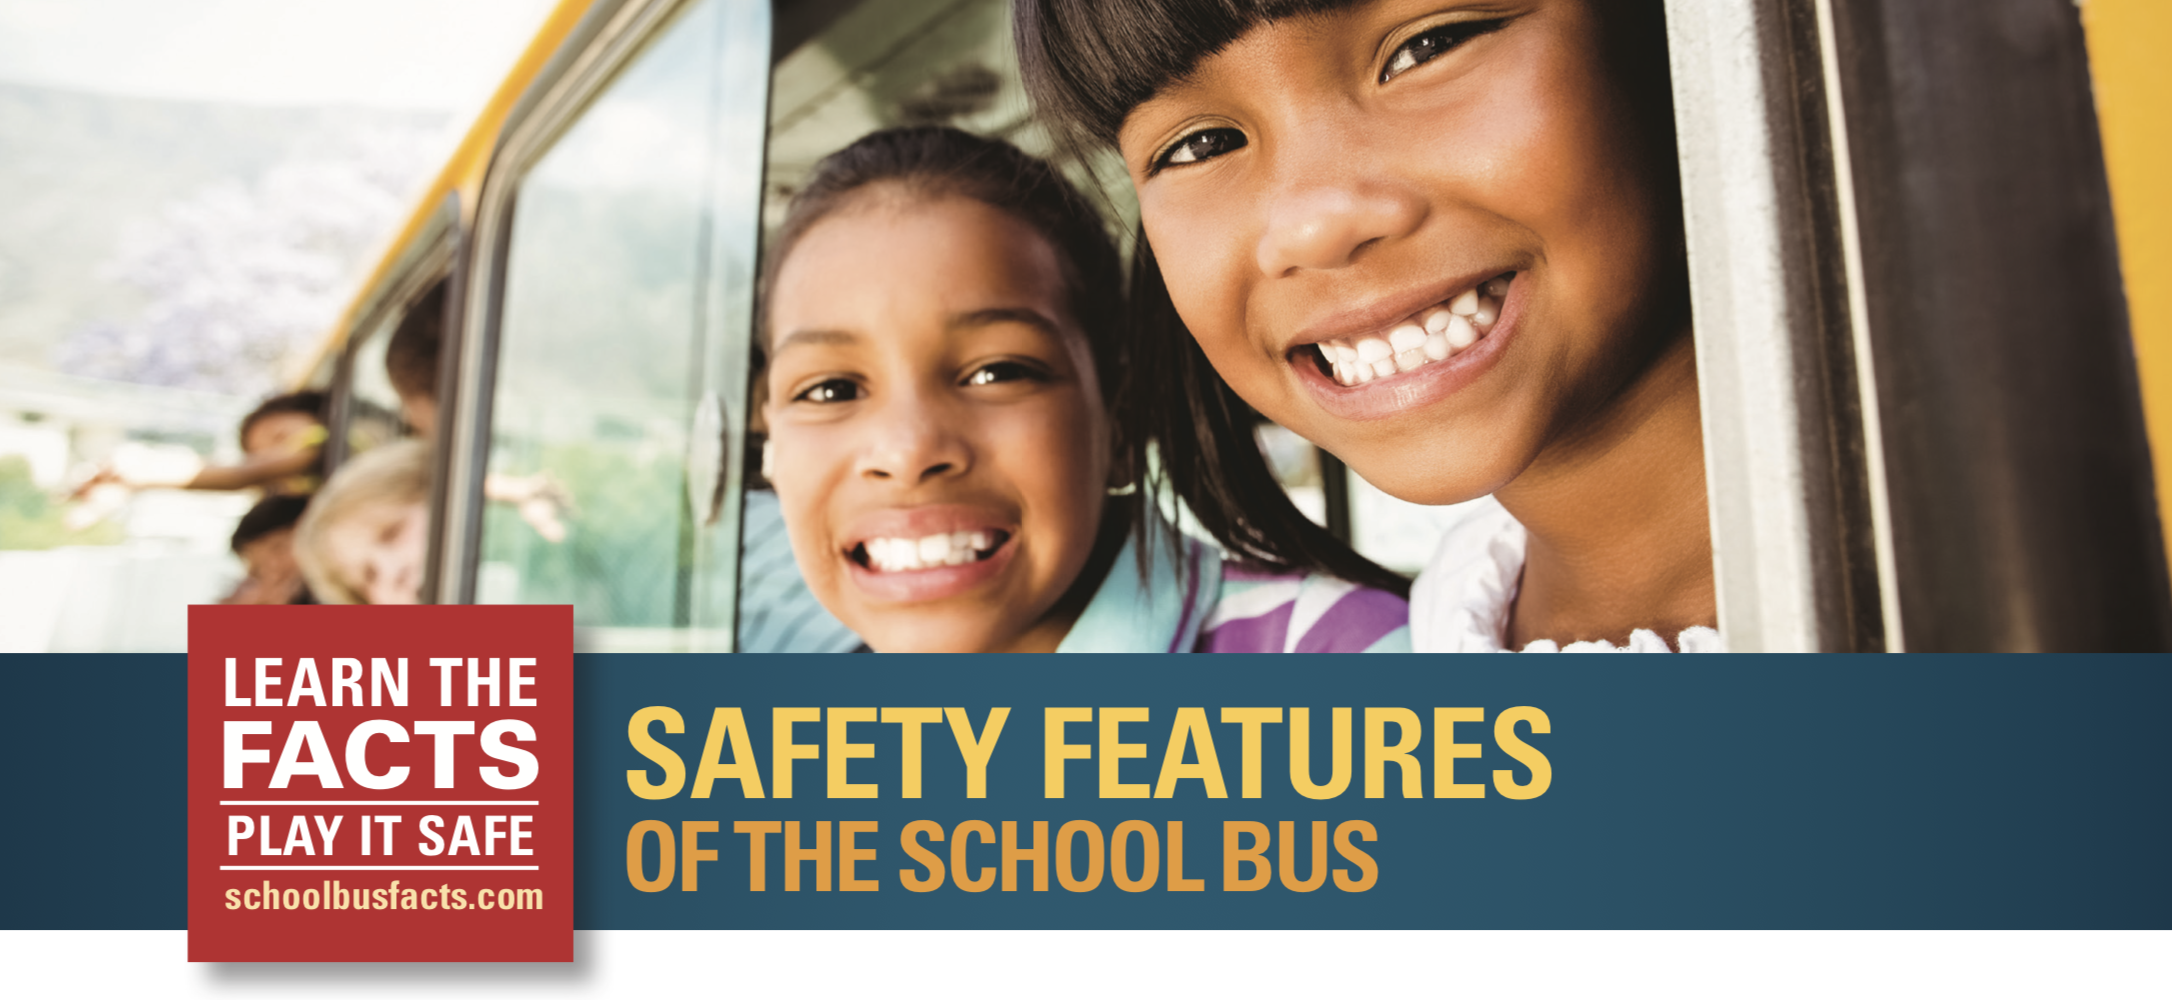 SCS | What makes a school bus so safe?